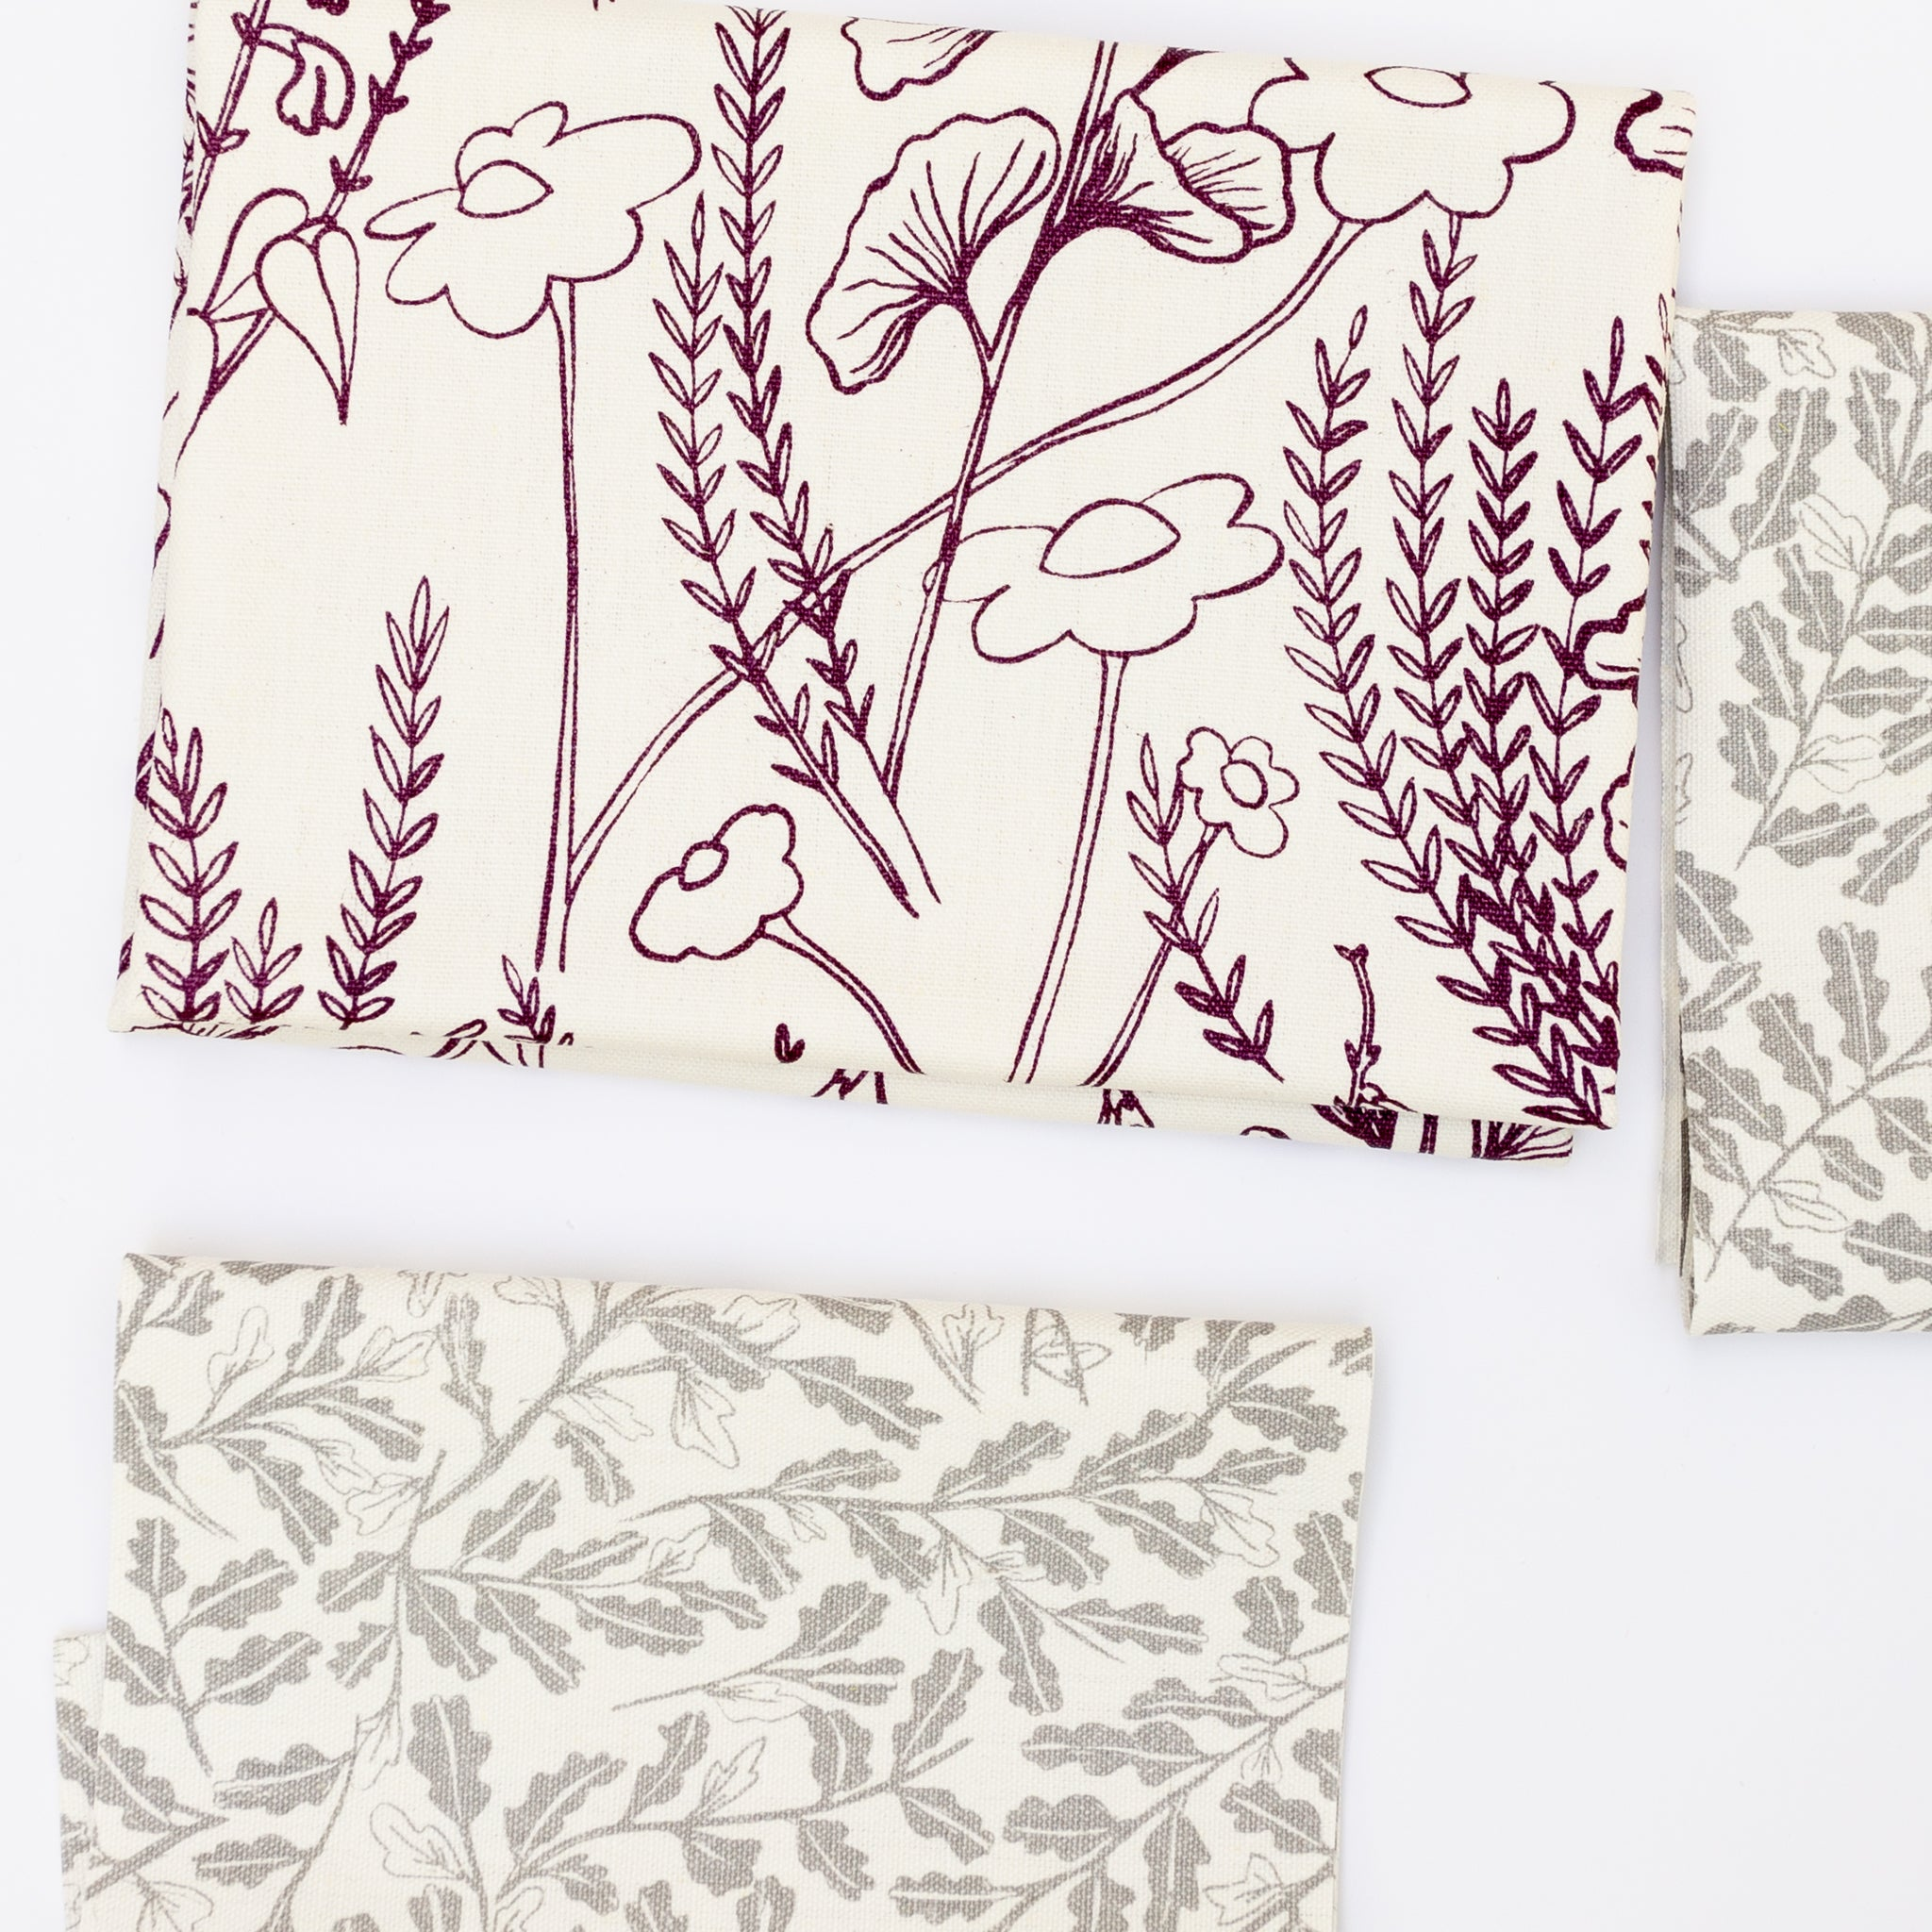 Pre-cut screen printed fabric with botanical illustrations